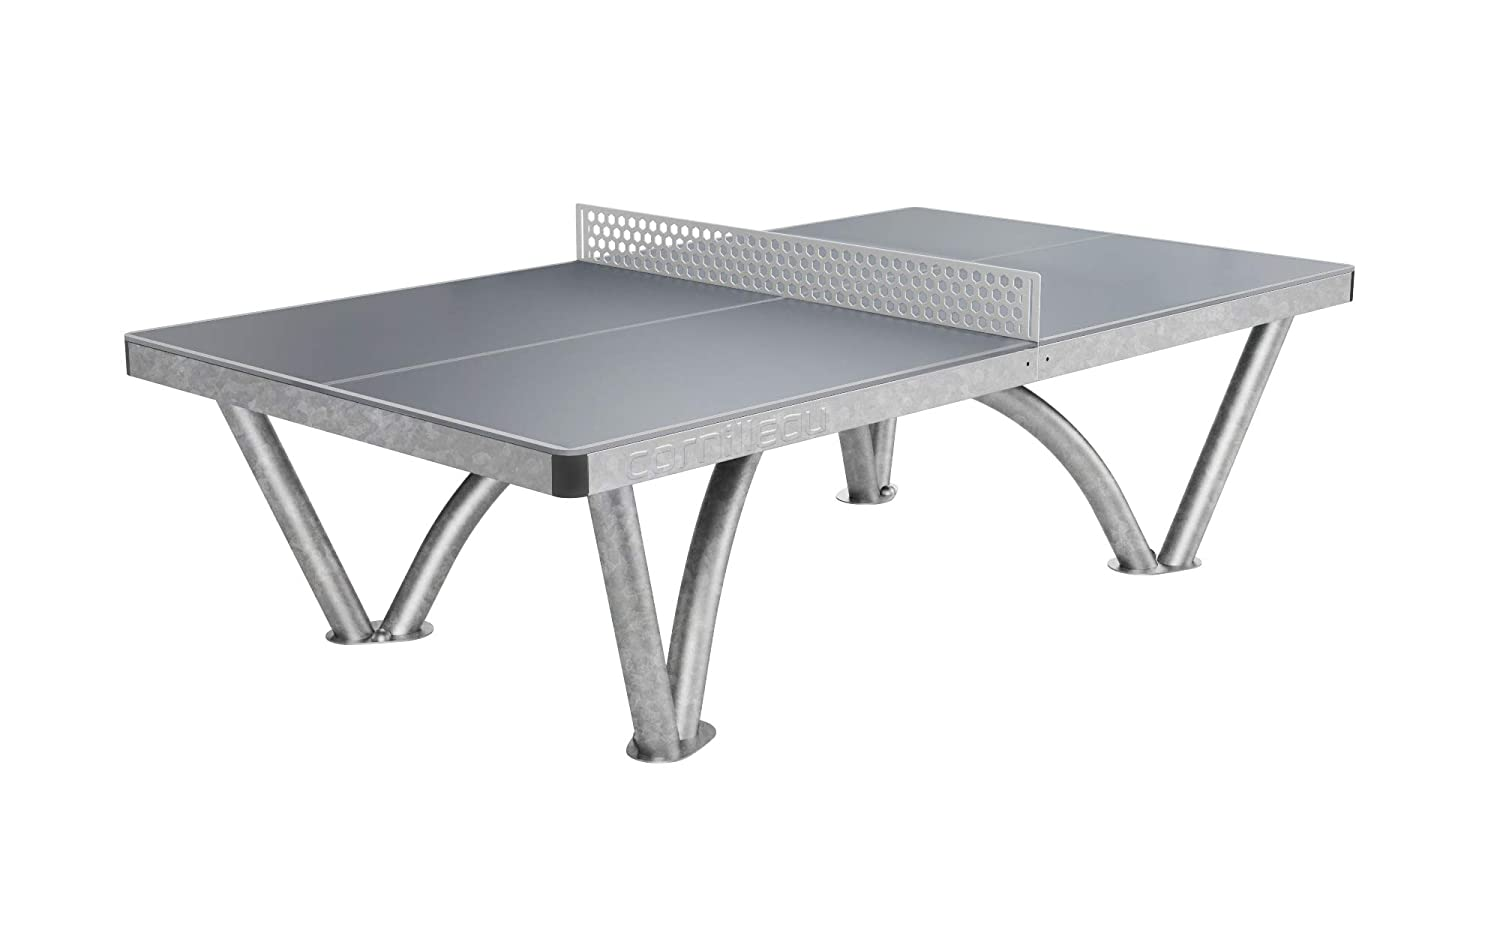 Cornilleau park outdoor table tennis table slate color top sports outdoors  jpg 1500x930 Table de tennis c50d05edccc7